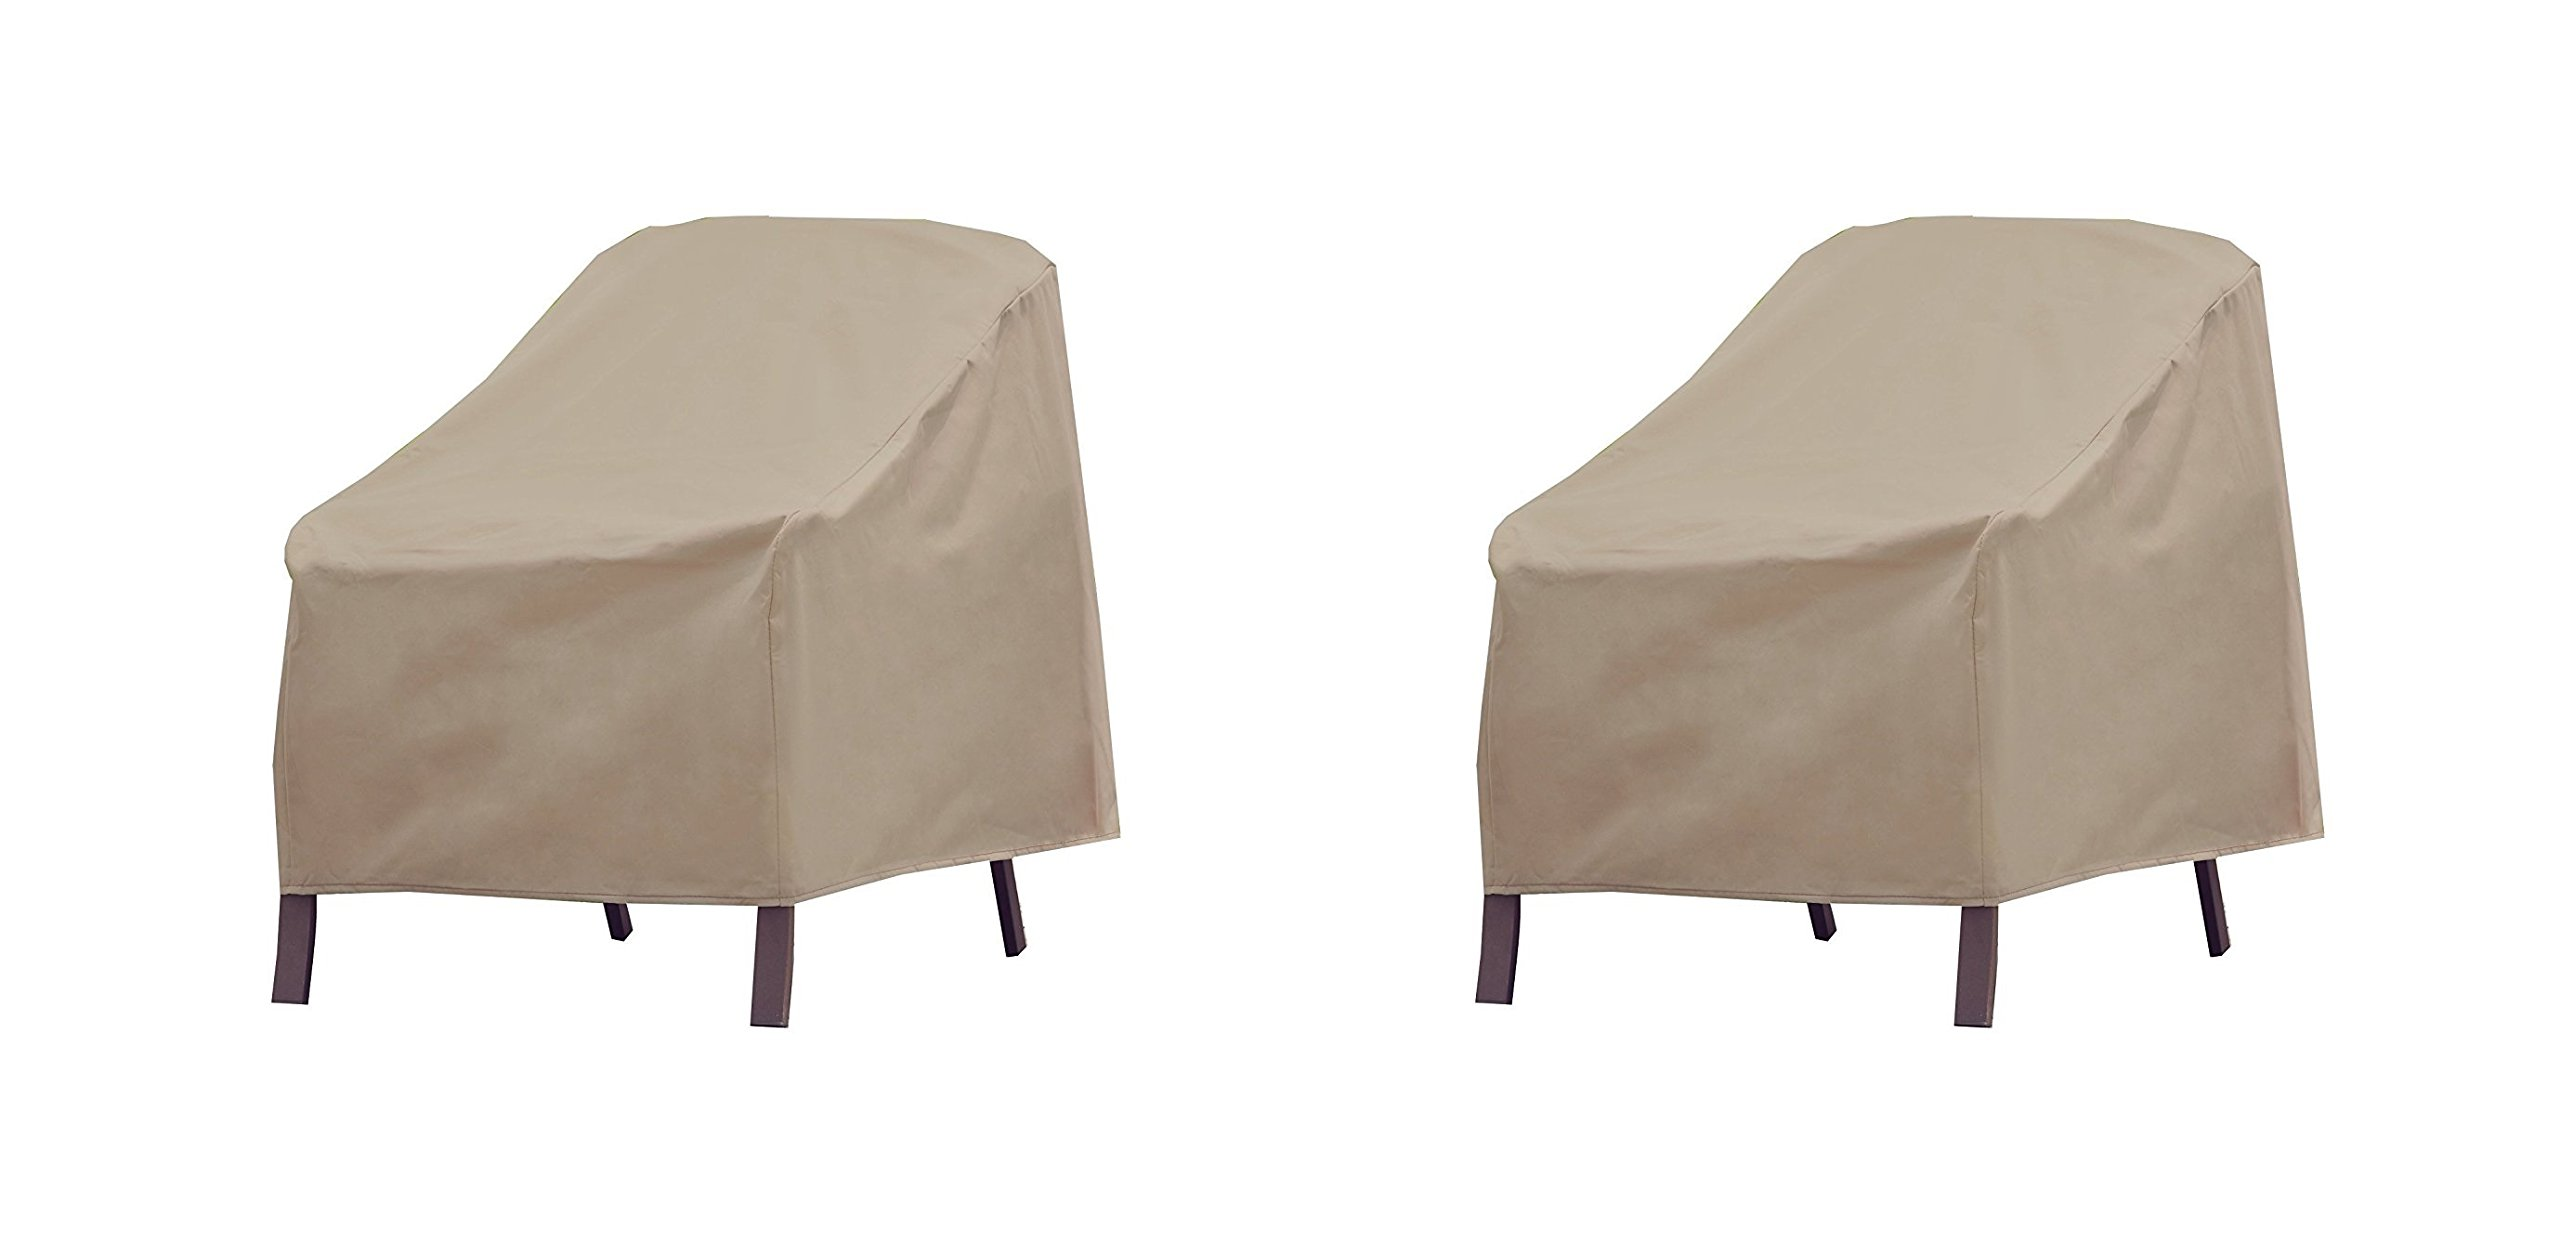 Allen Patio Protectors Patio Furniture Chair Cover, Weather & waterproof patio chair cover (Pack of 2)